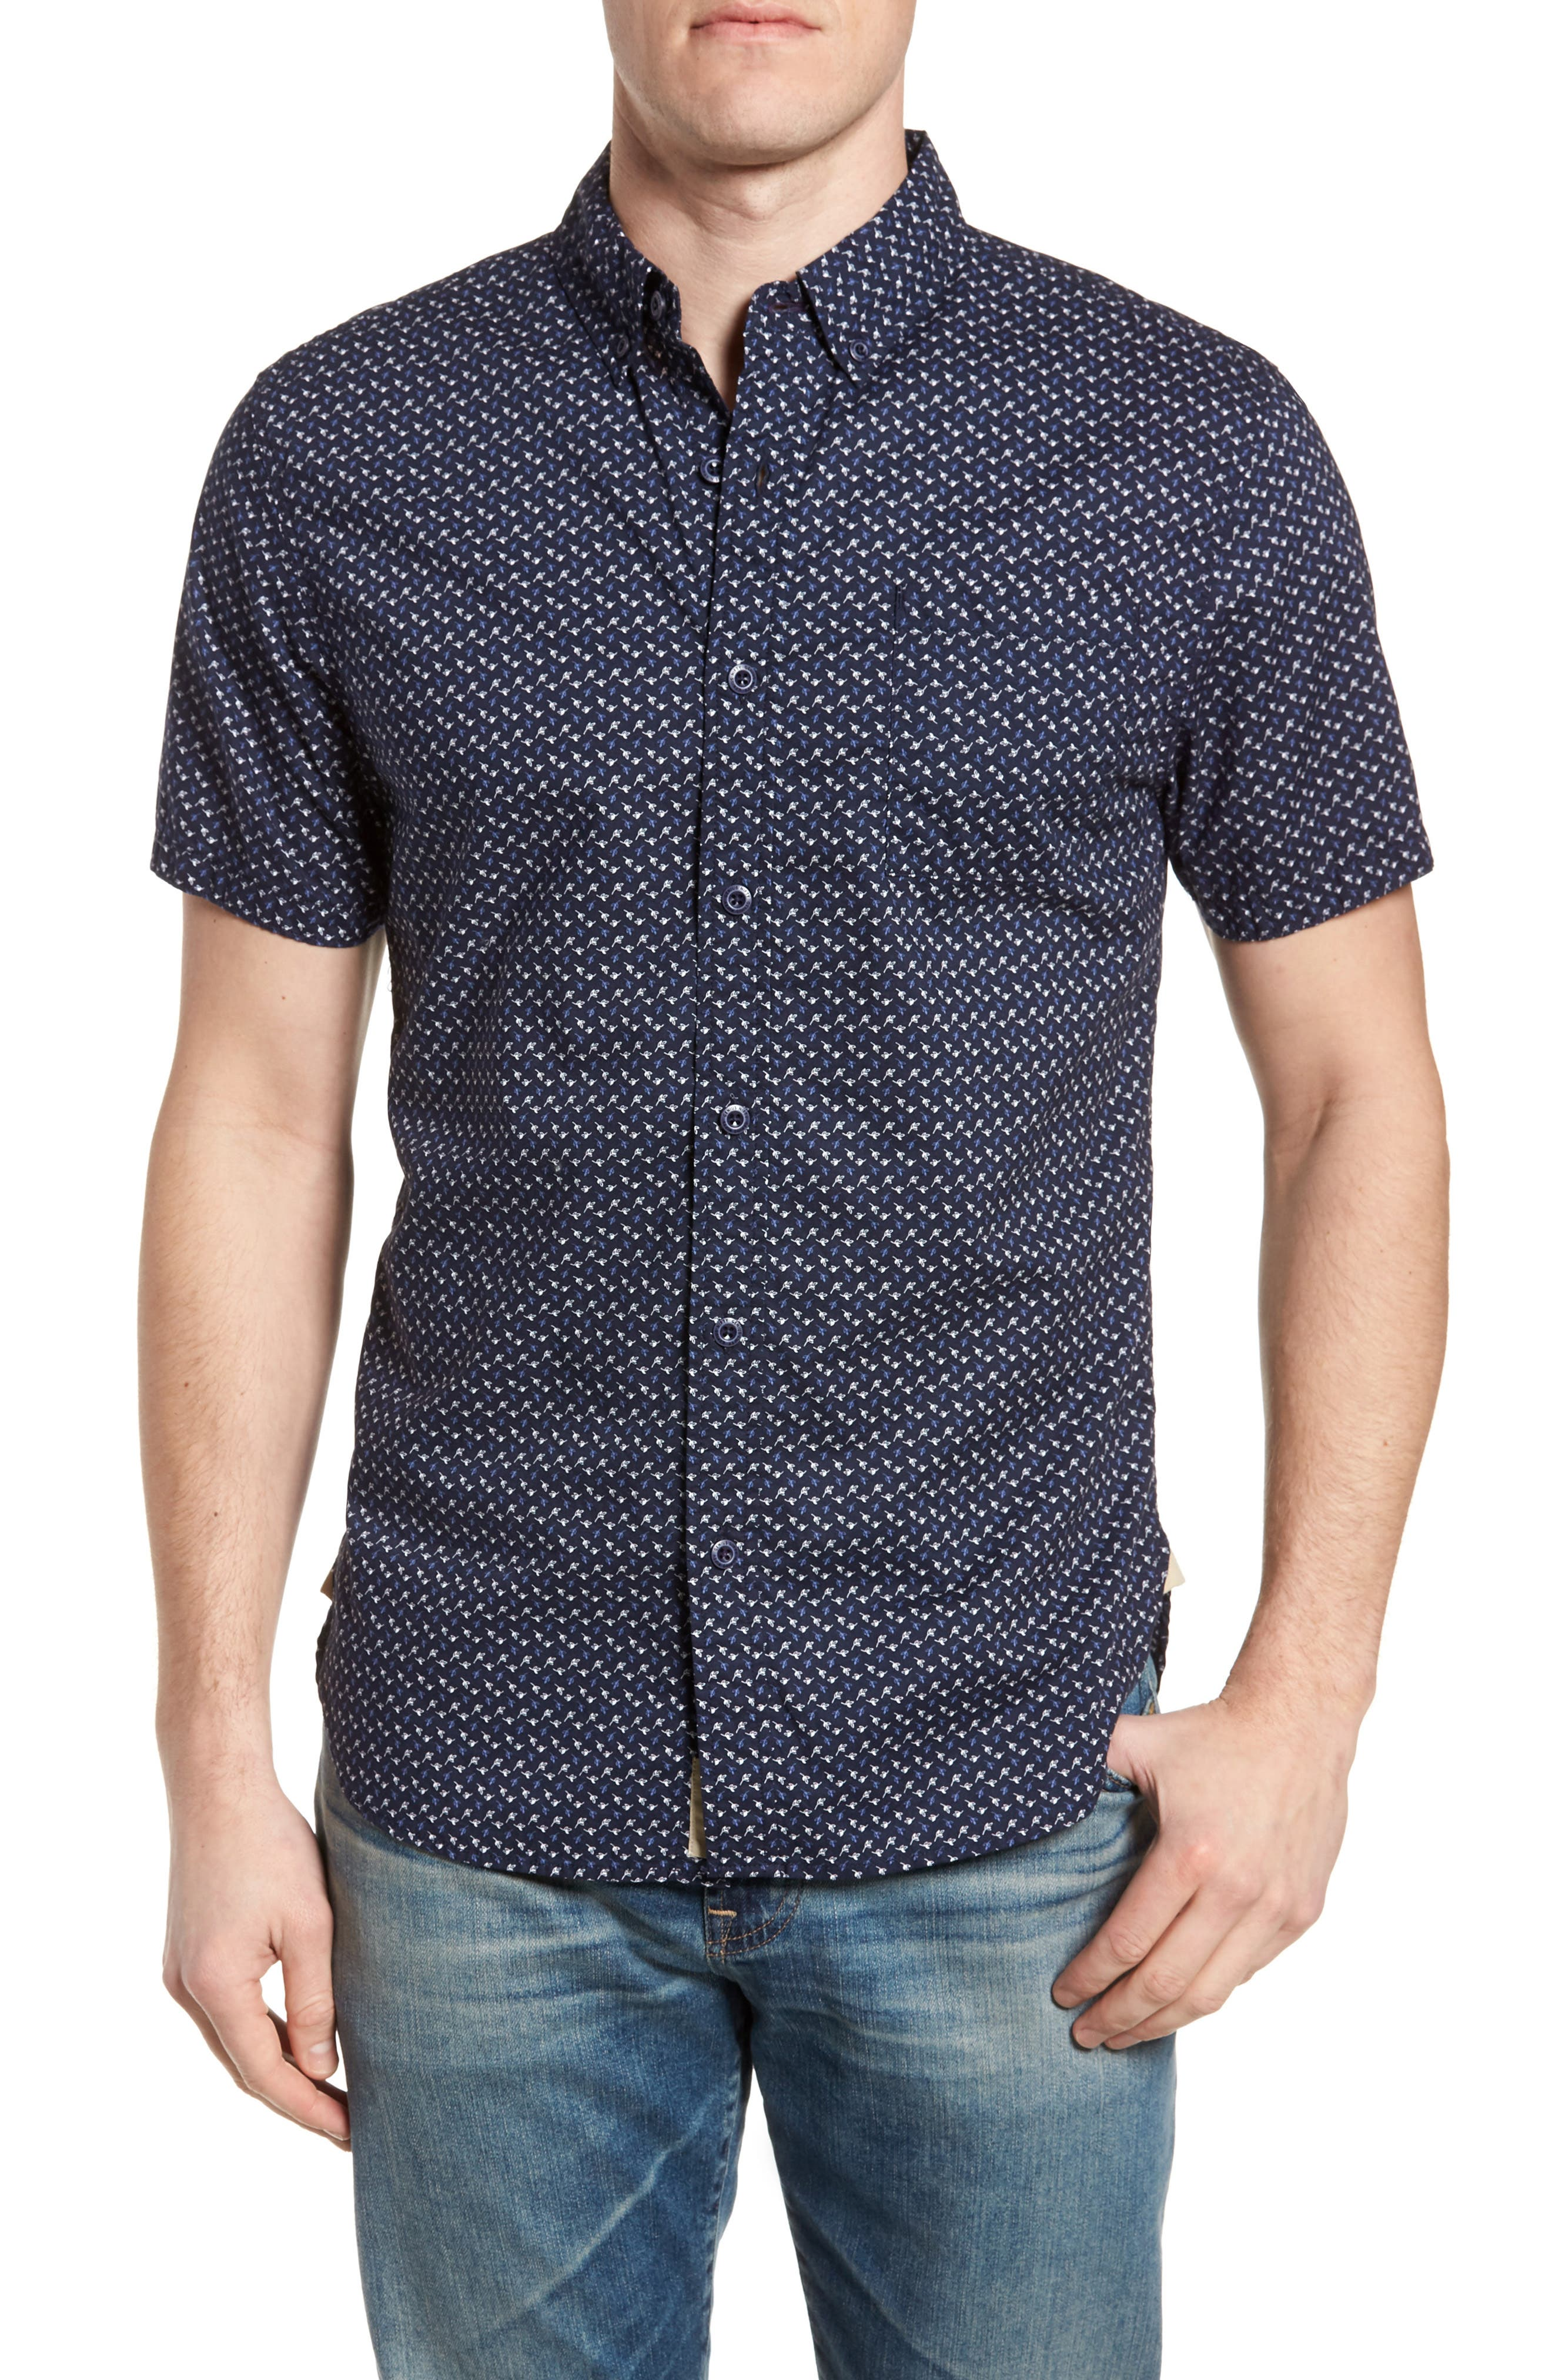 Truman Slim Fit Short Sleeve Sport Shirt,                         Main,                         color, Navy